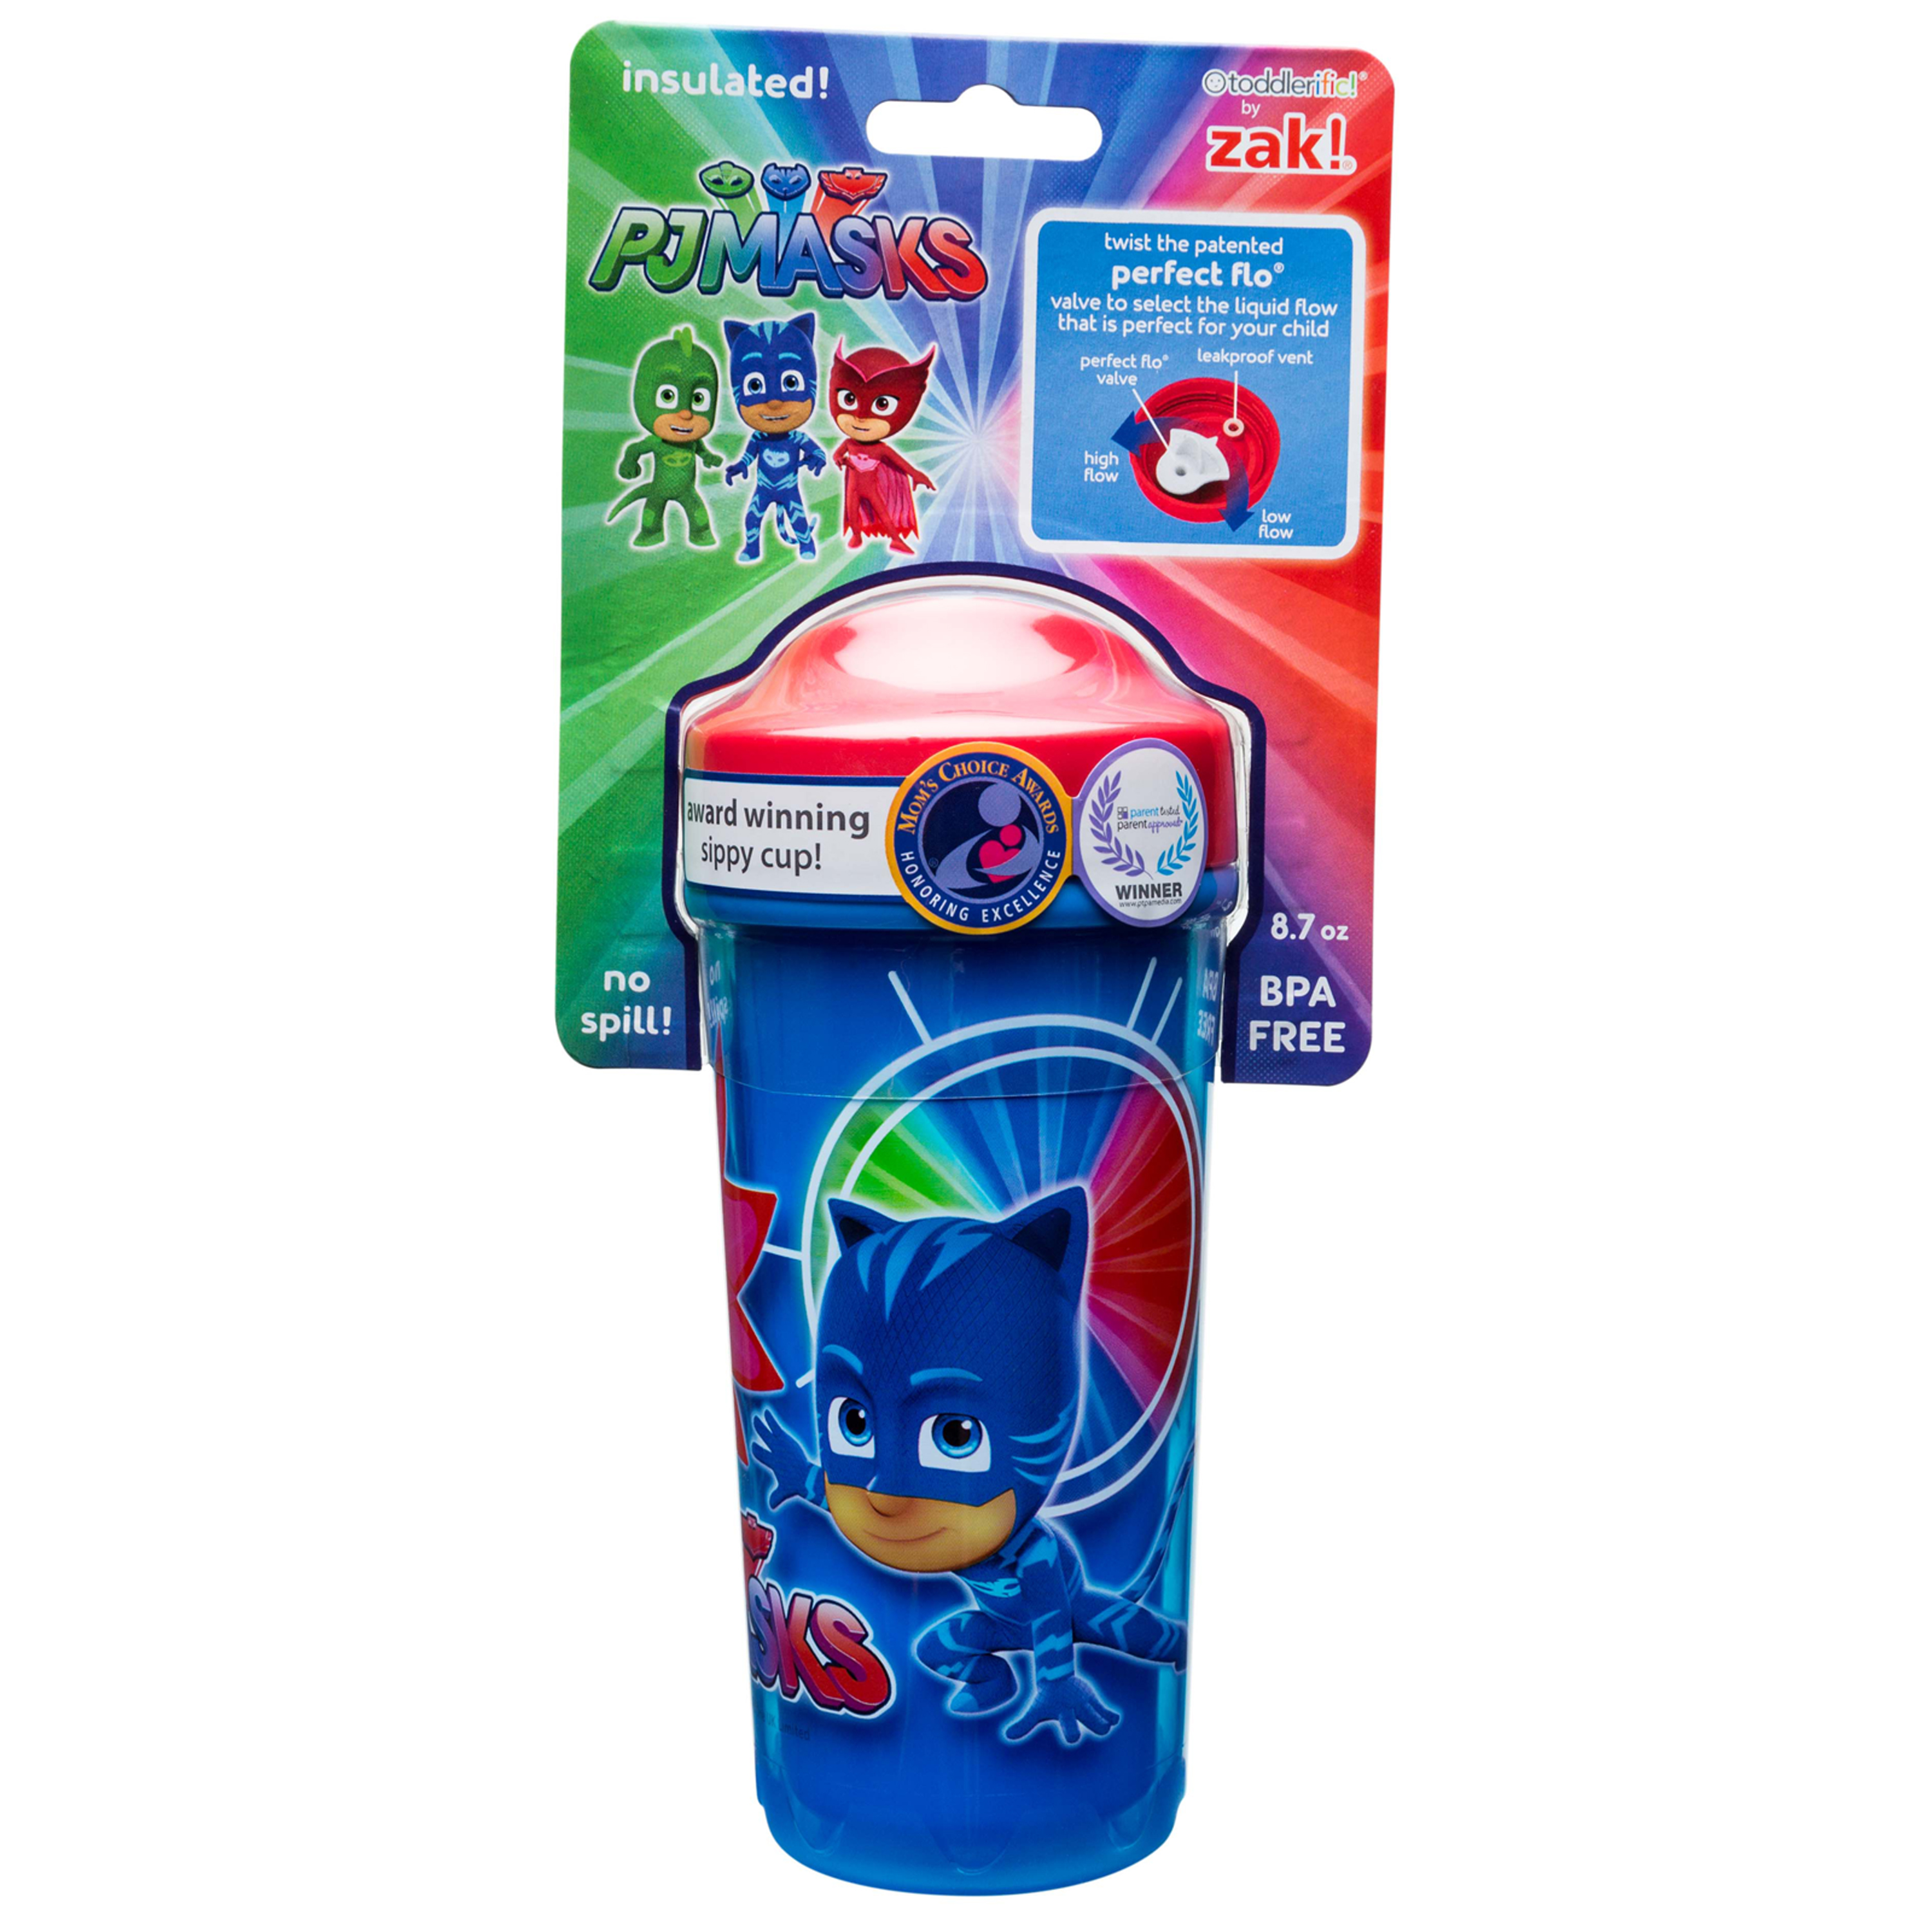 PJ Masks 8.7 ounce Sippy Cup, Catboy, Owlette & Gekko, 2-piece set slideshow image 5